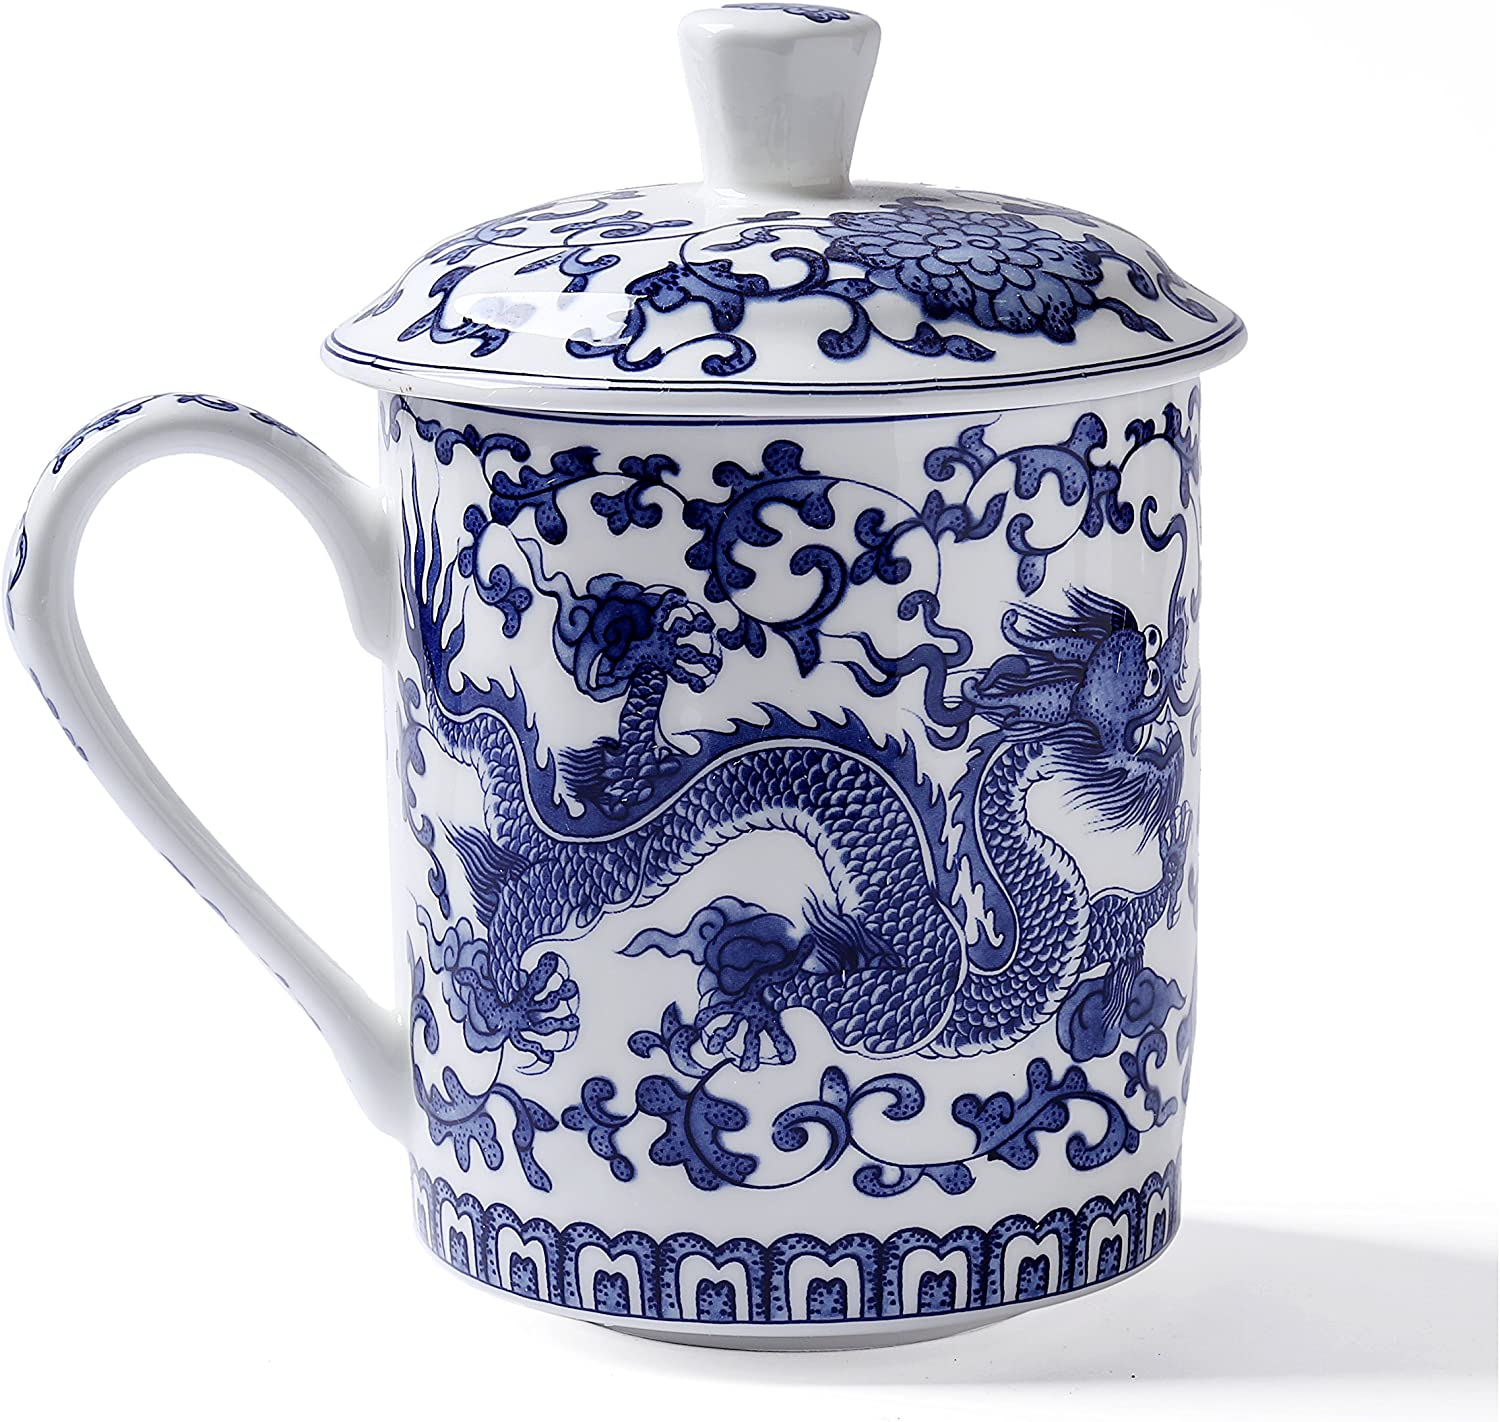 ufengke White and Blue Bone China Porcelain Tea Cup with Lid, Blue Dragon  Painting, Daddy Cups, Gift Cups, 6ml